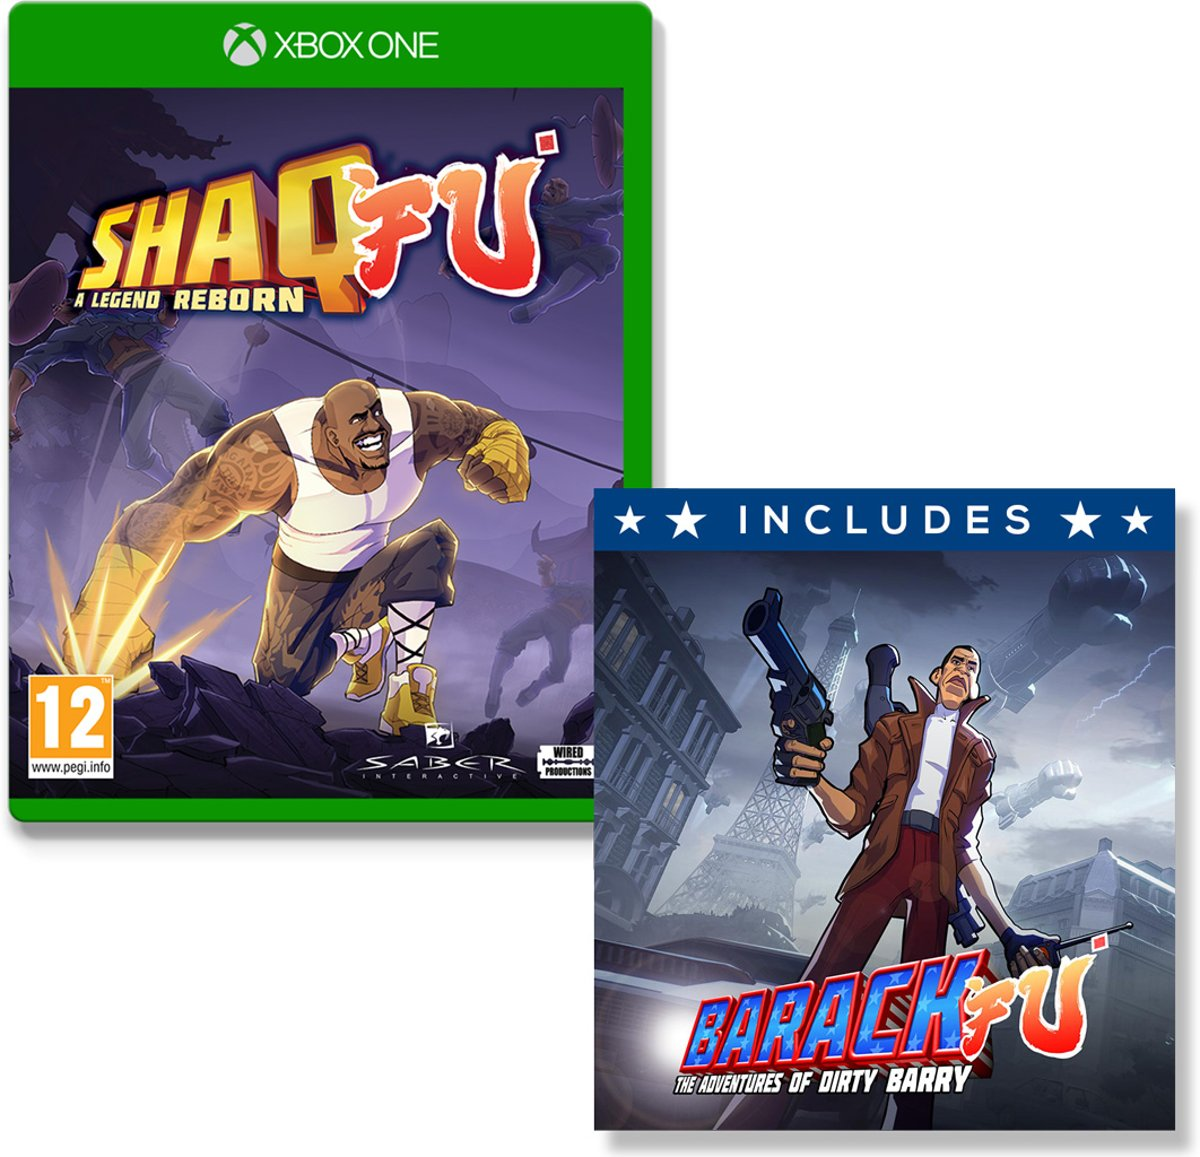 Shaq Fu - A Legend Reborn Xbox One